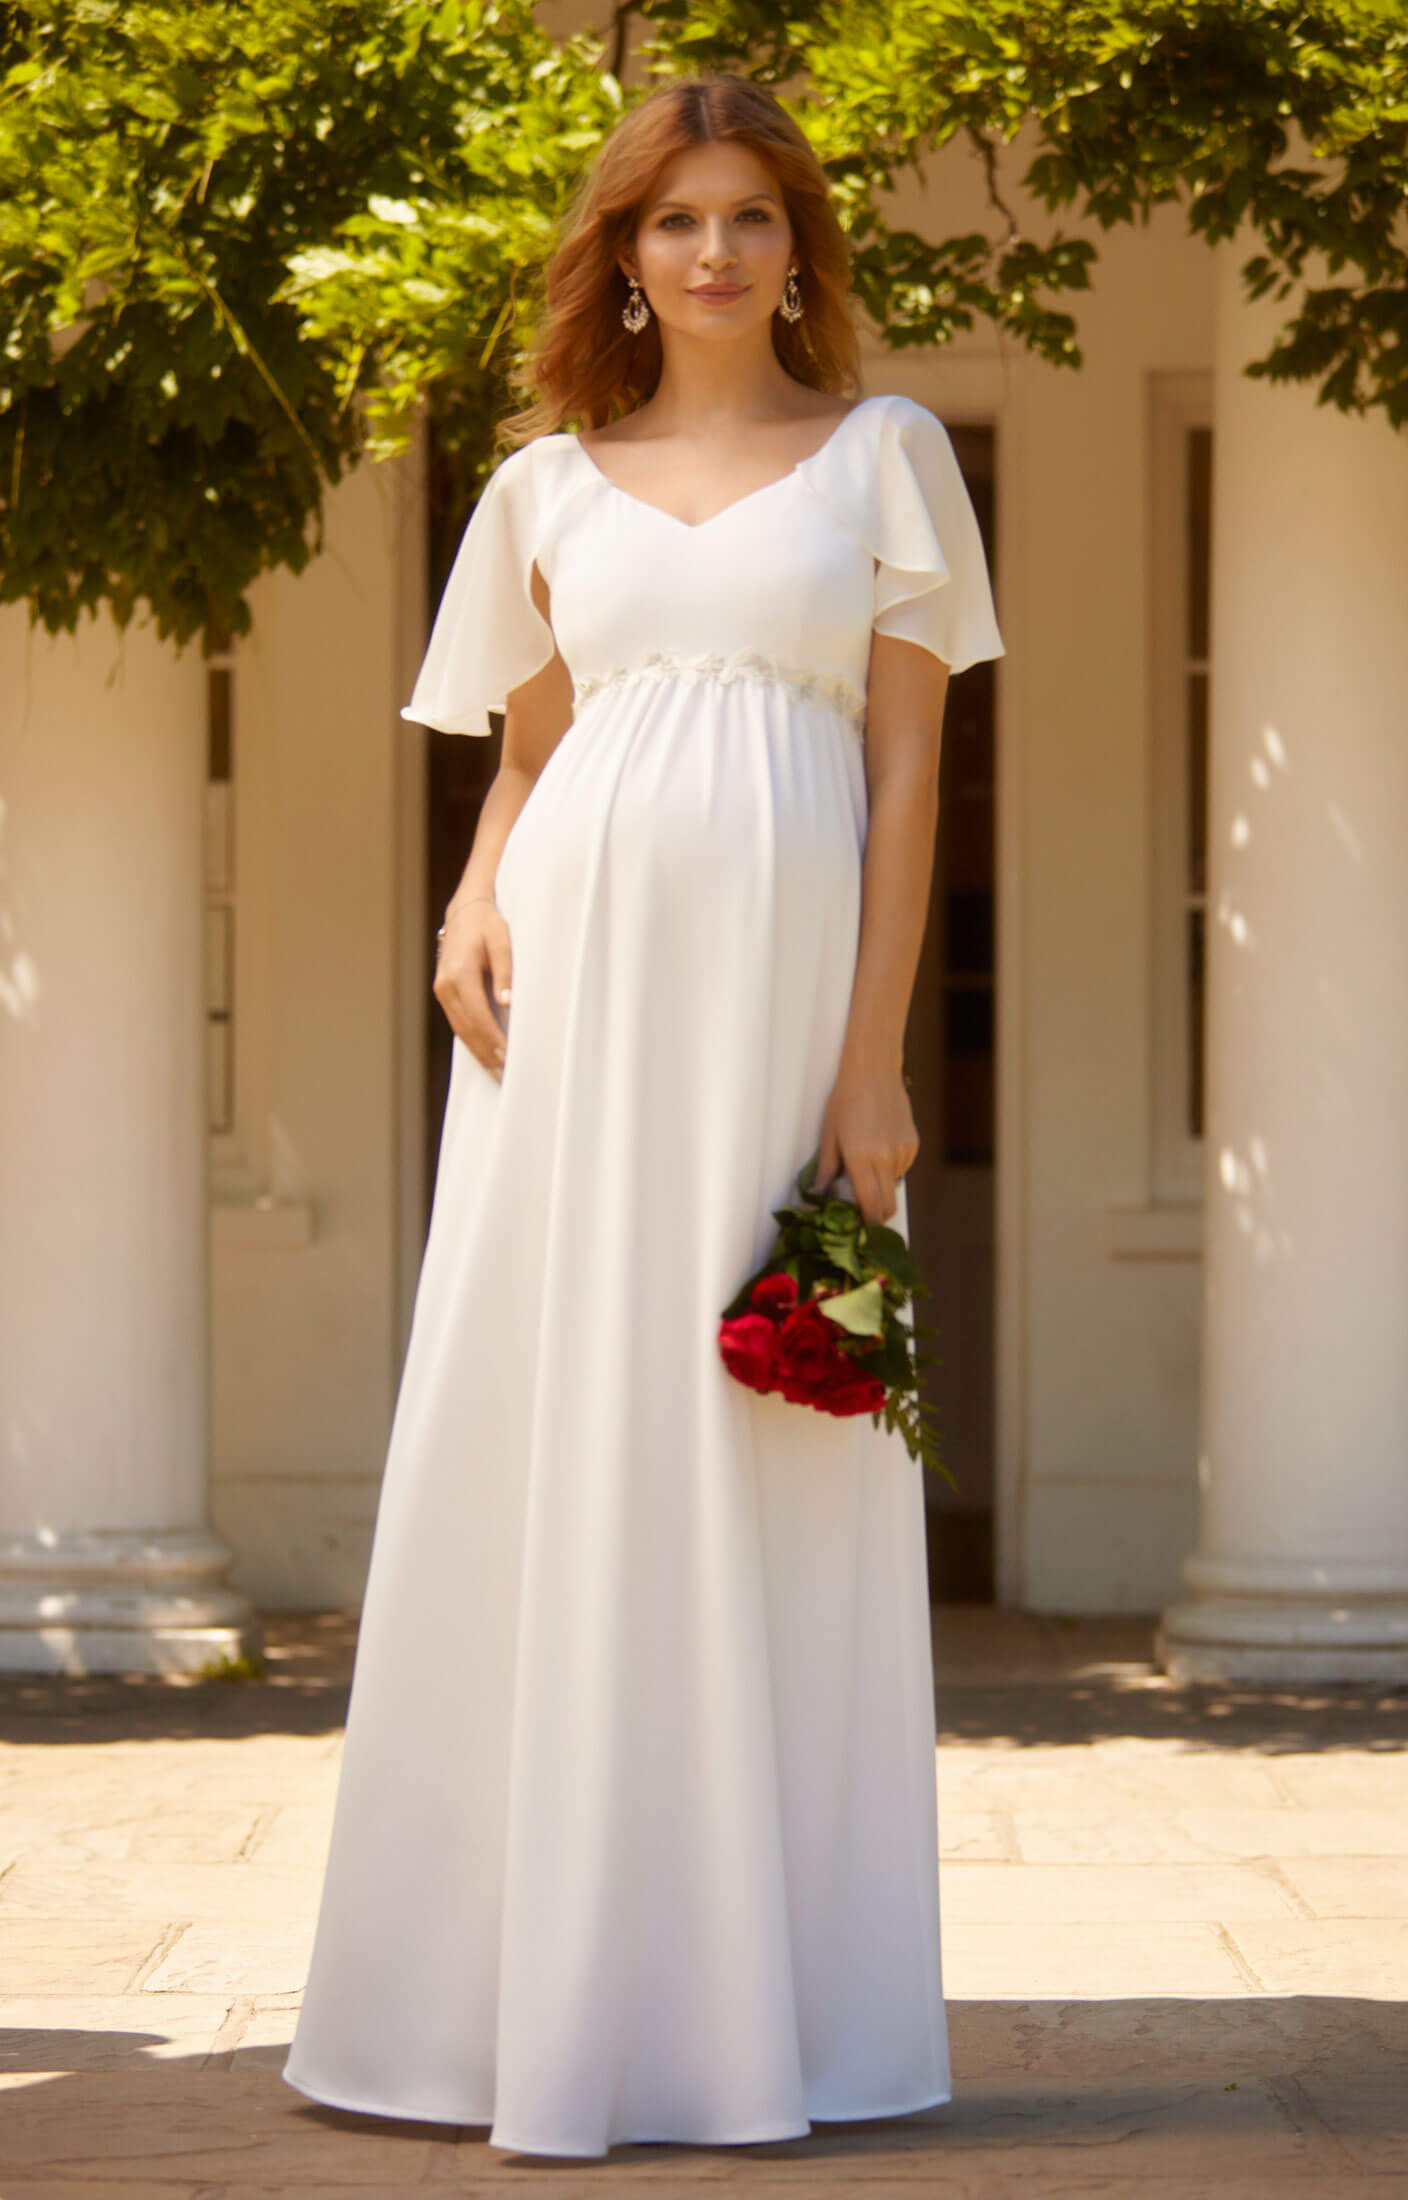 Everly maternity wedding gown ivory maternity wedding dresses everly maternity wedding gown ivory by tiffany rose ombrellifo Gallery